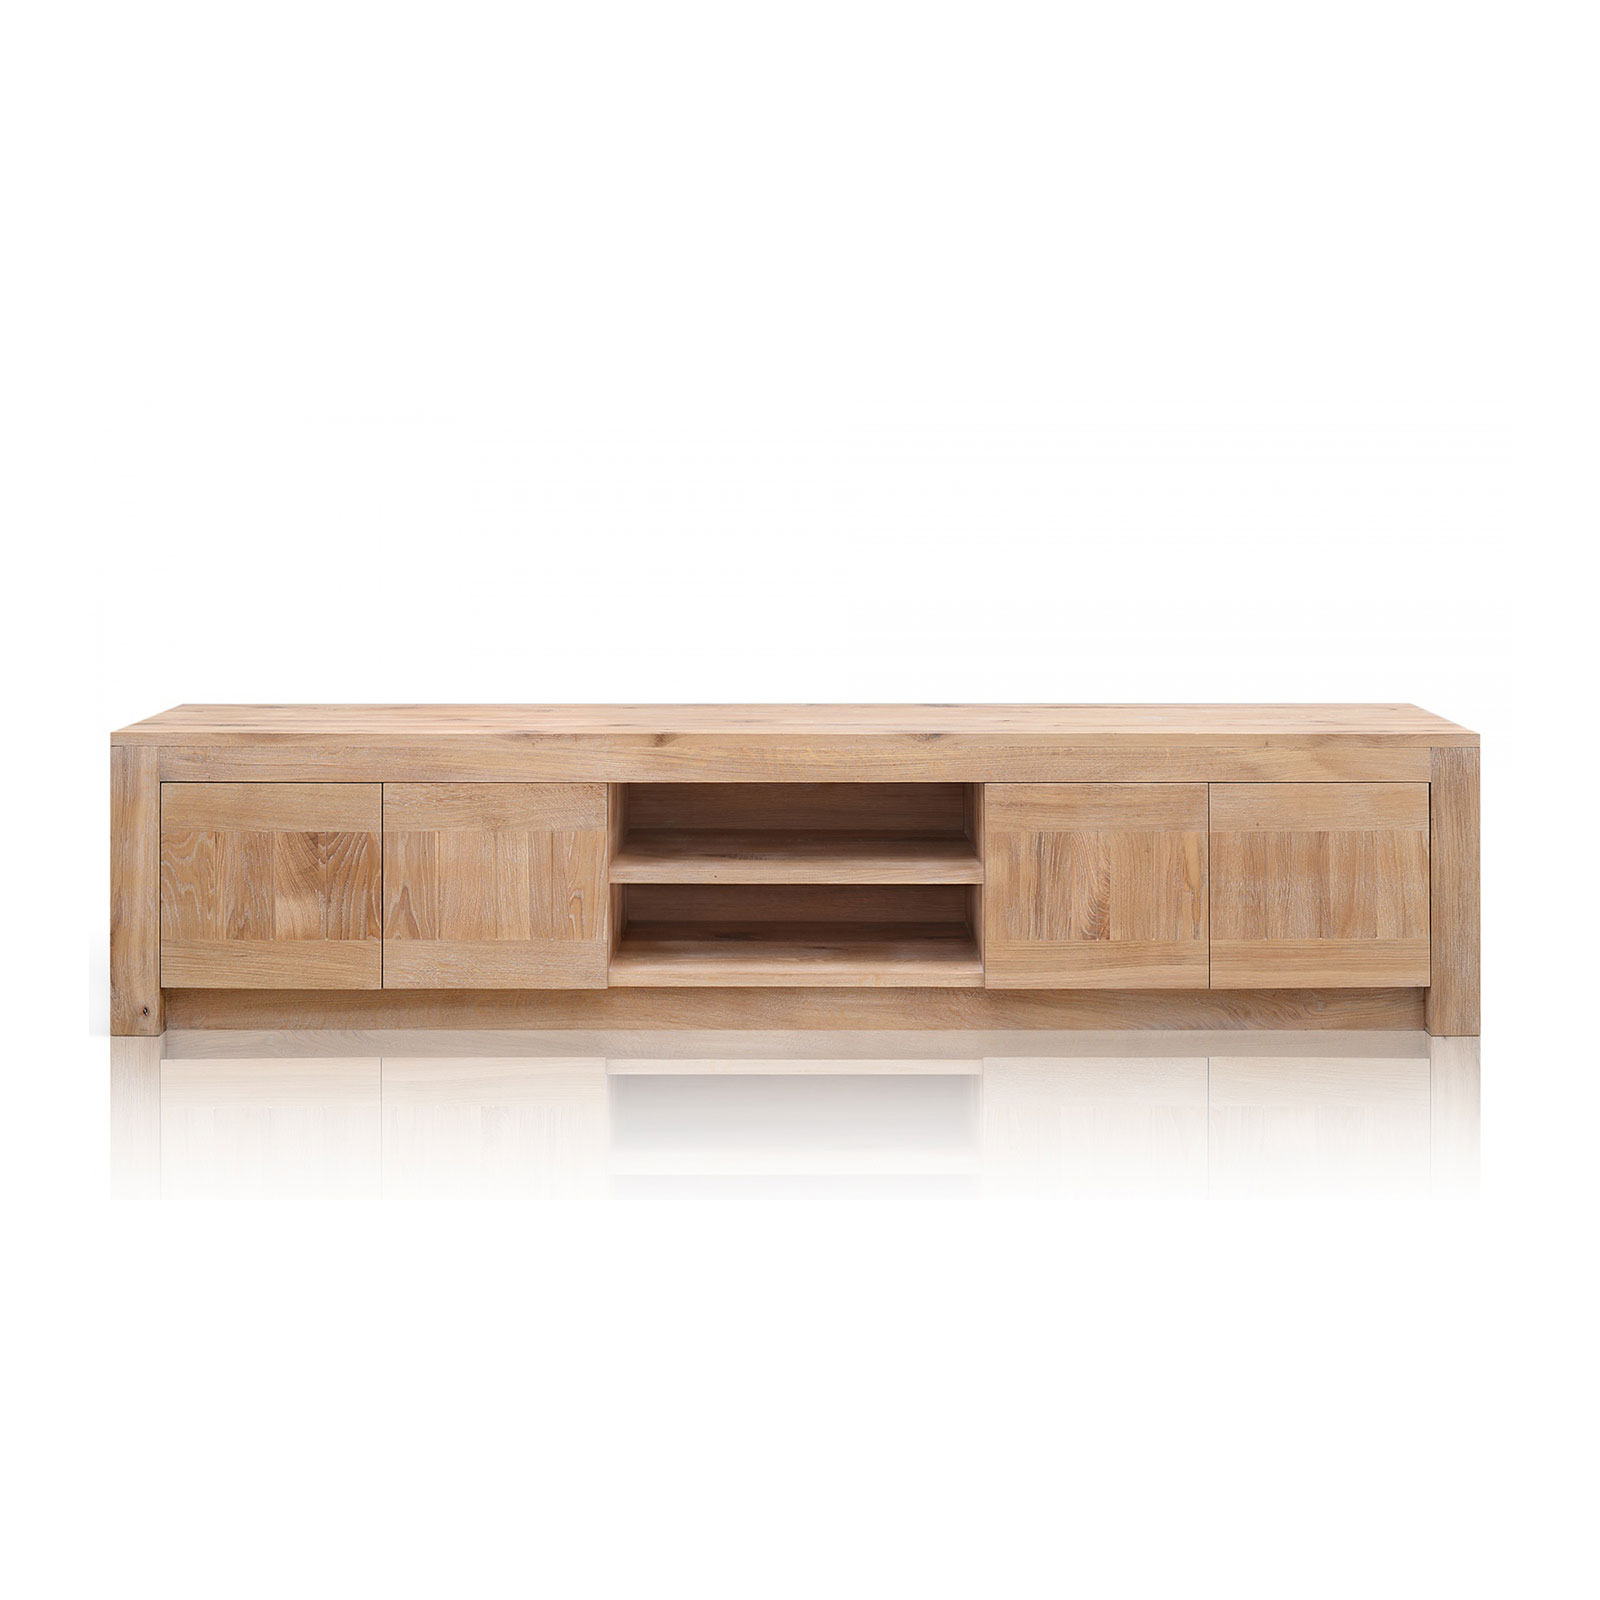 The Modern Furniture Collection